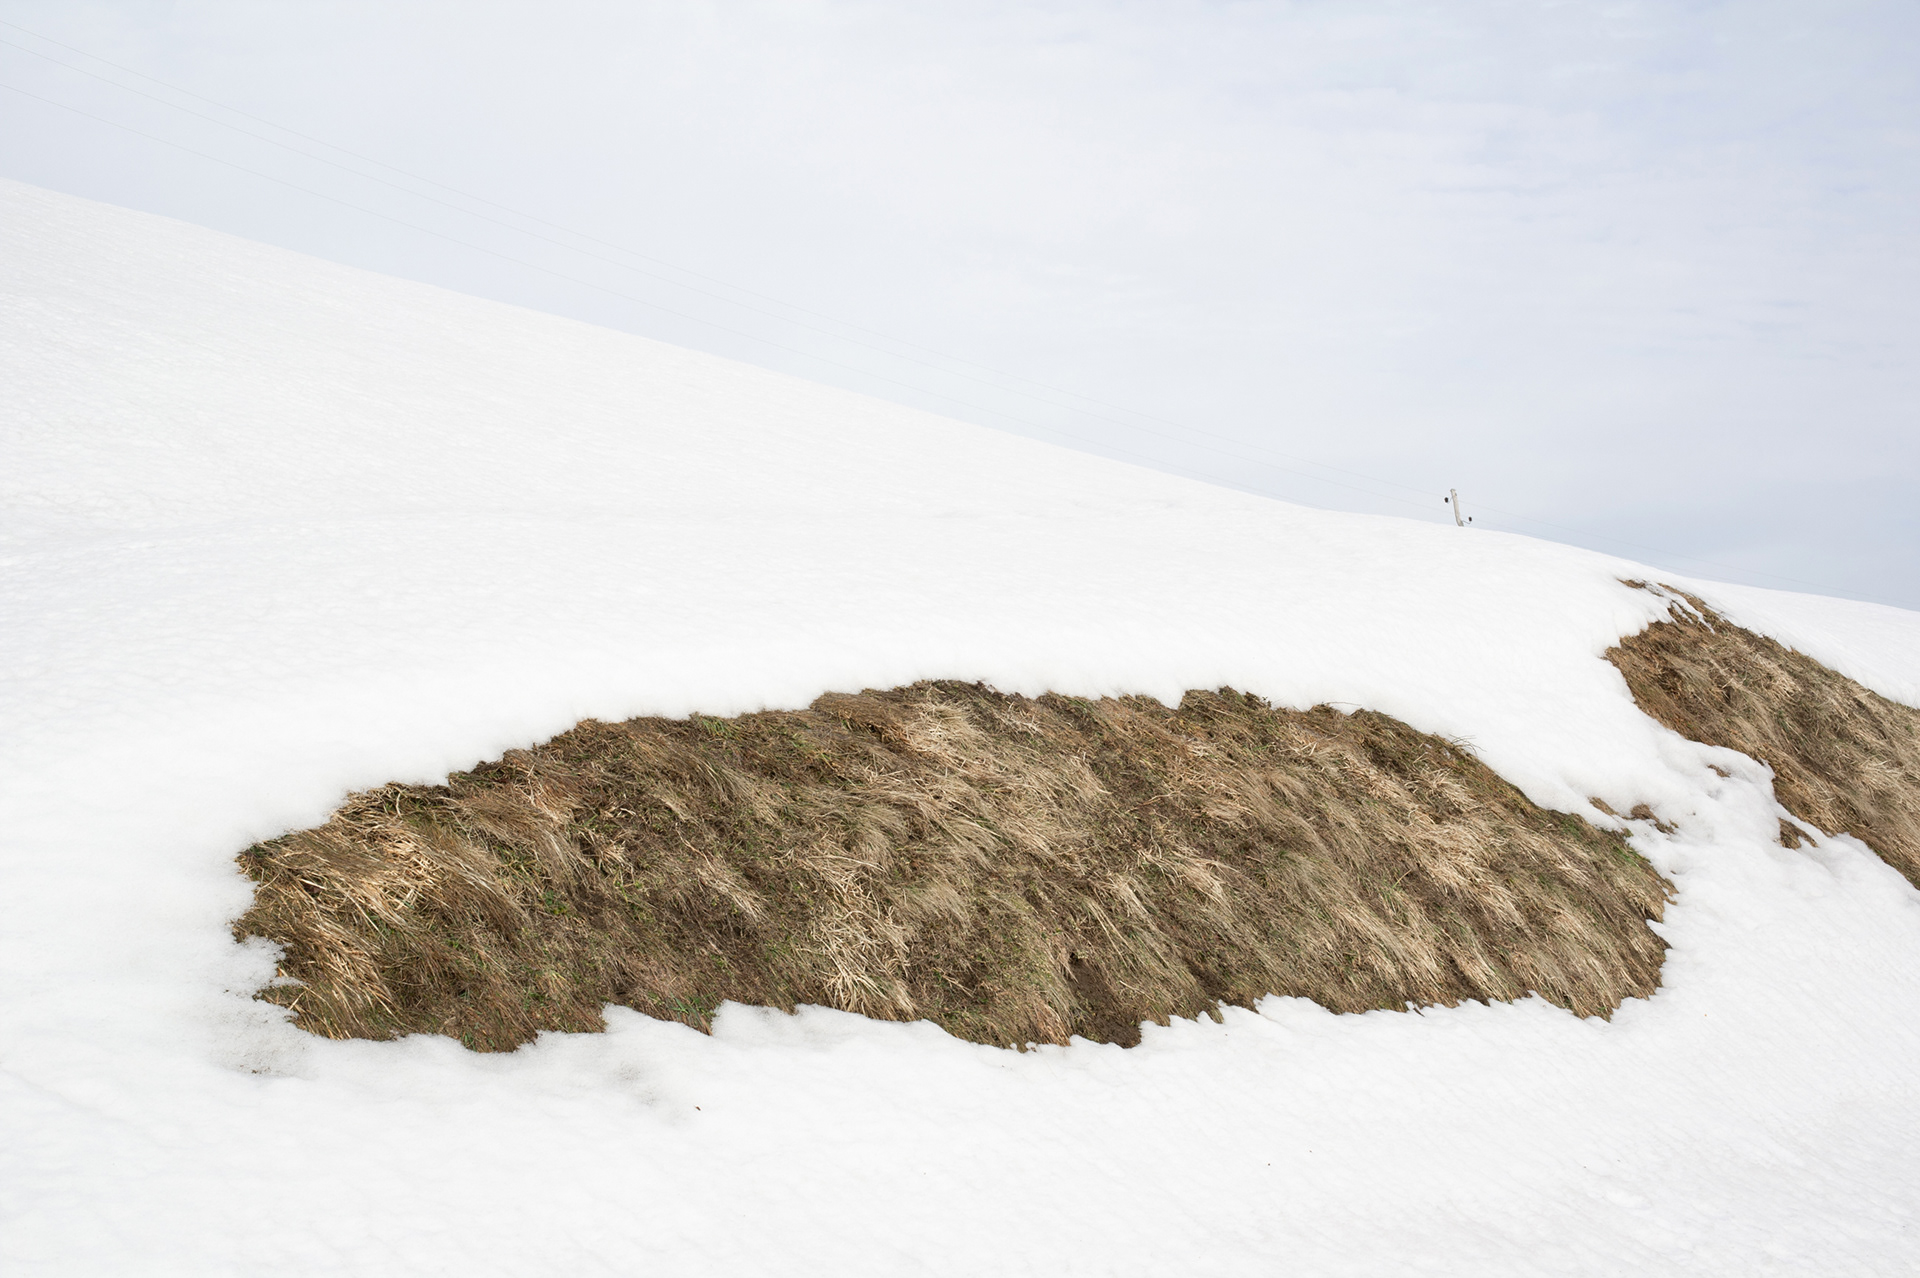 Snowy landscape with uncovered dry snow, Pohorje, Slovenia